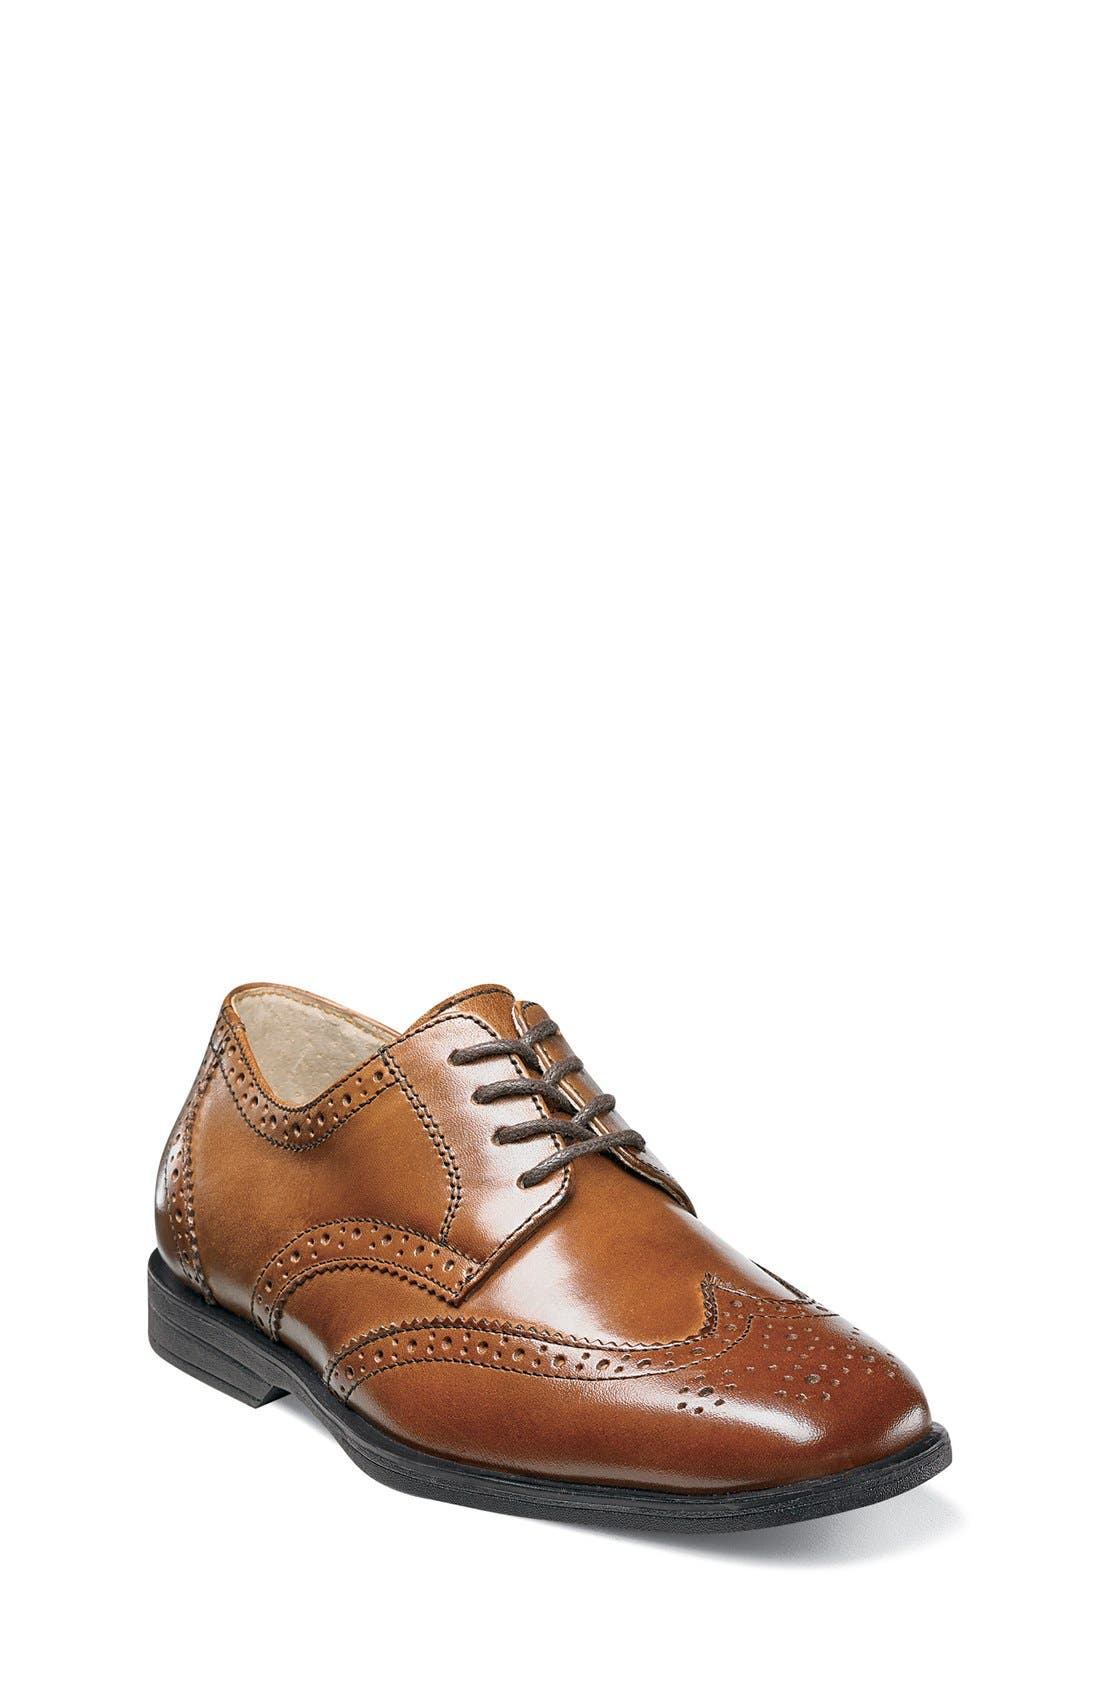 'Reveal' Wingtip Oxford,                             Main thumbnail 1, color,                             COGNAC LEATHER